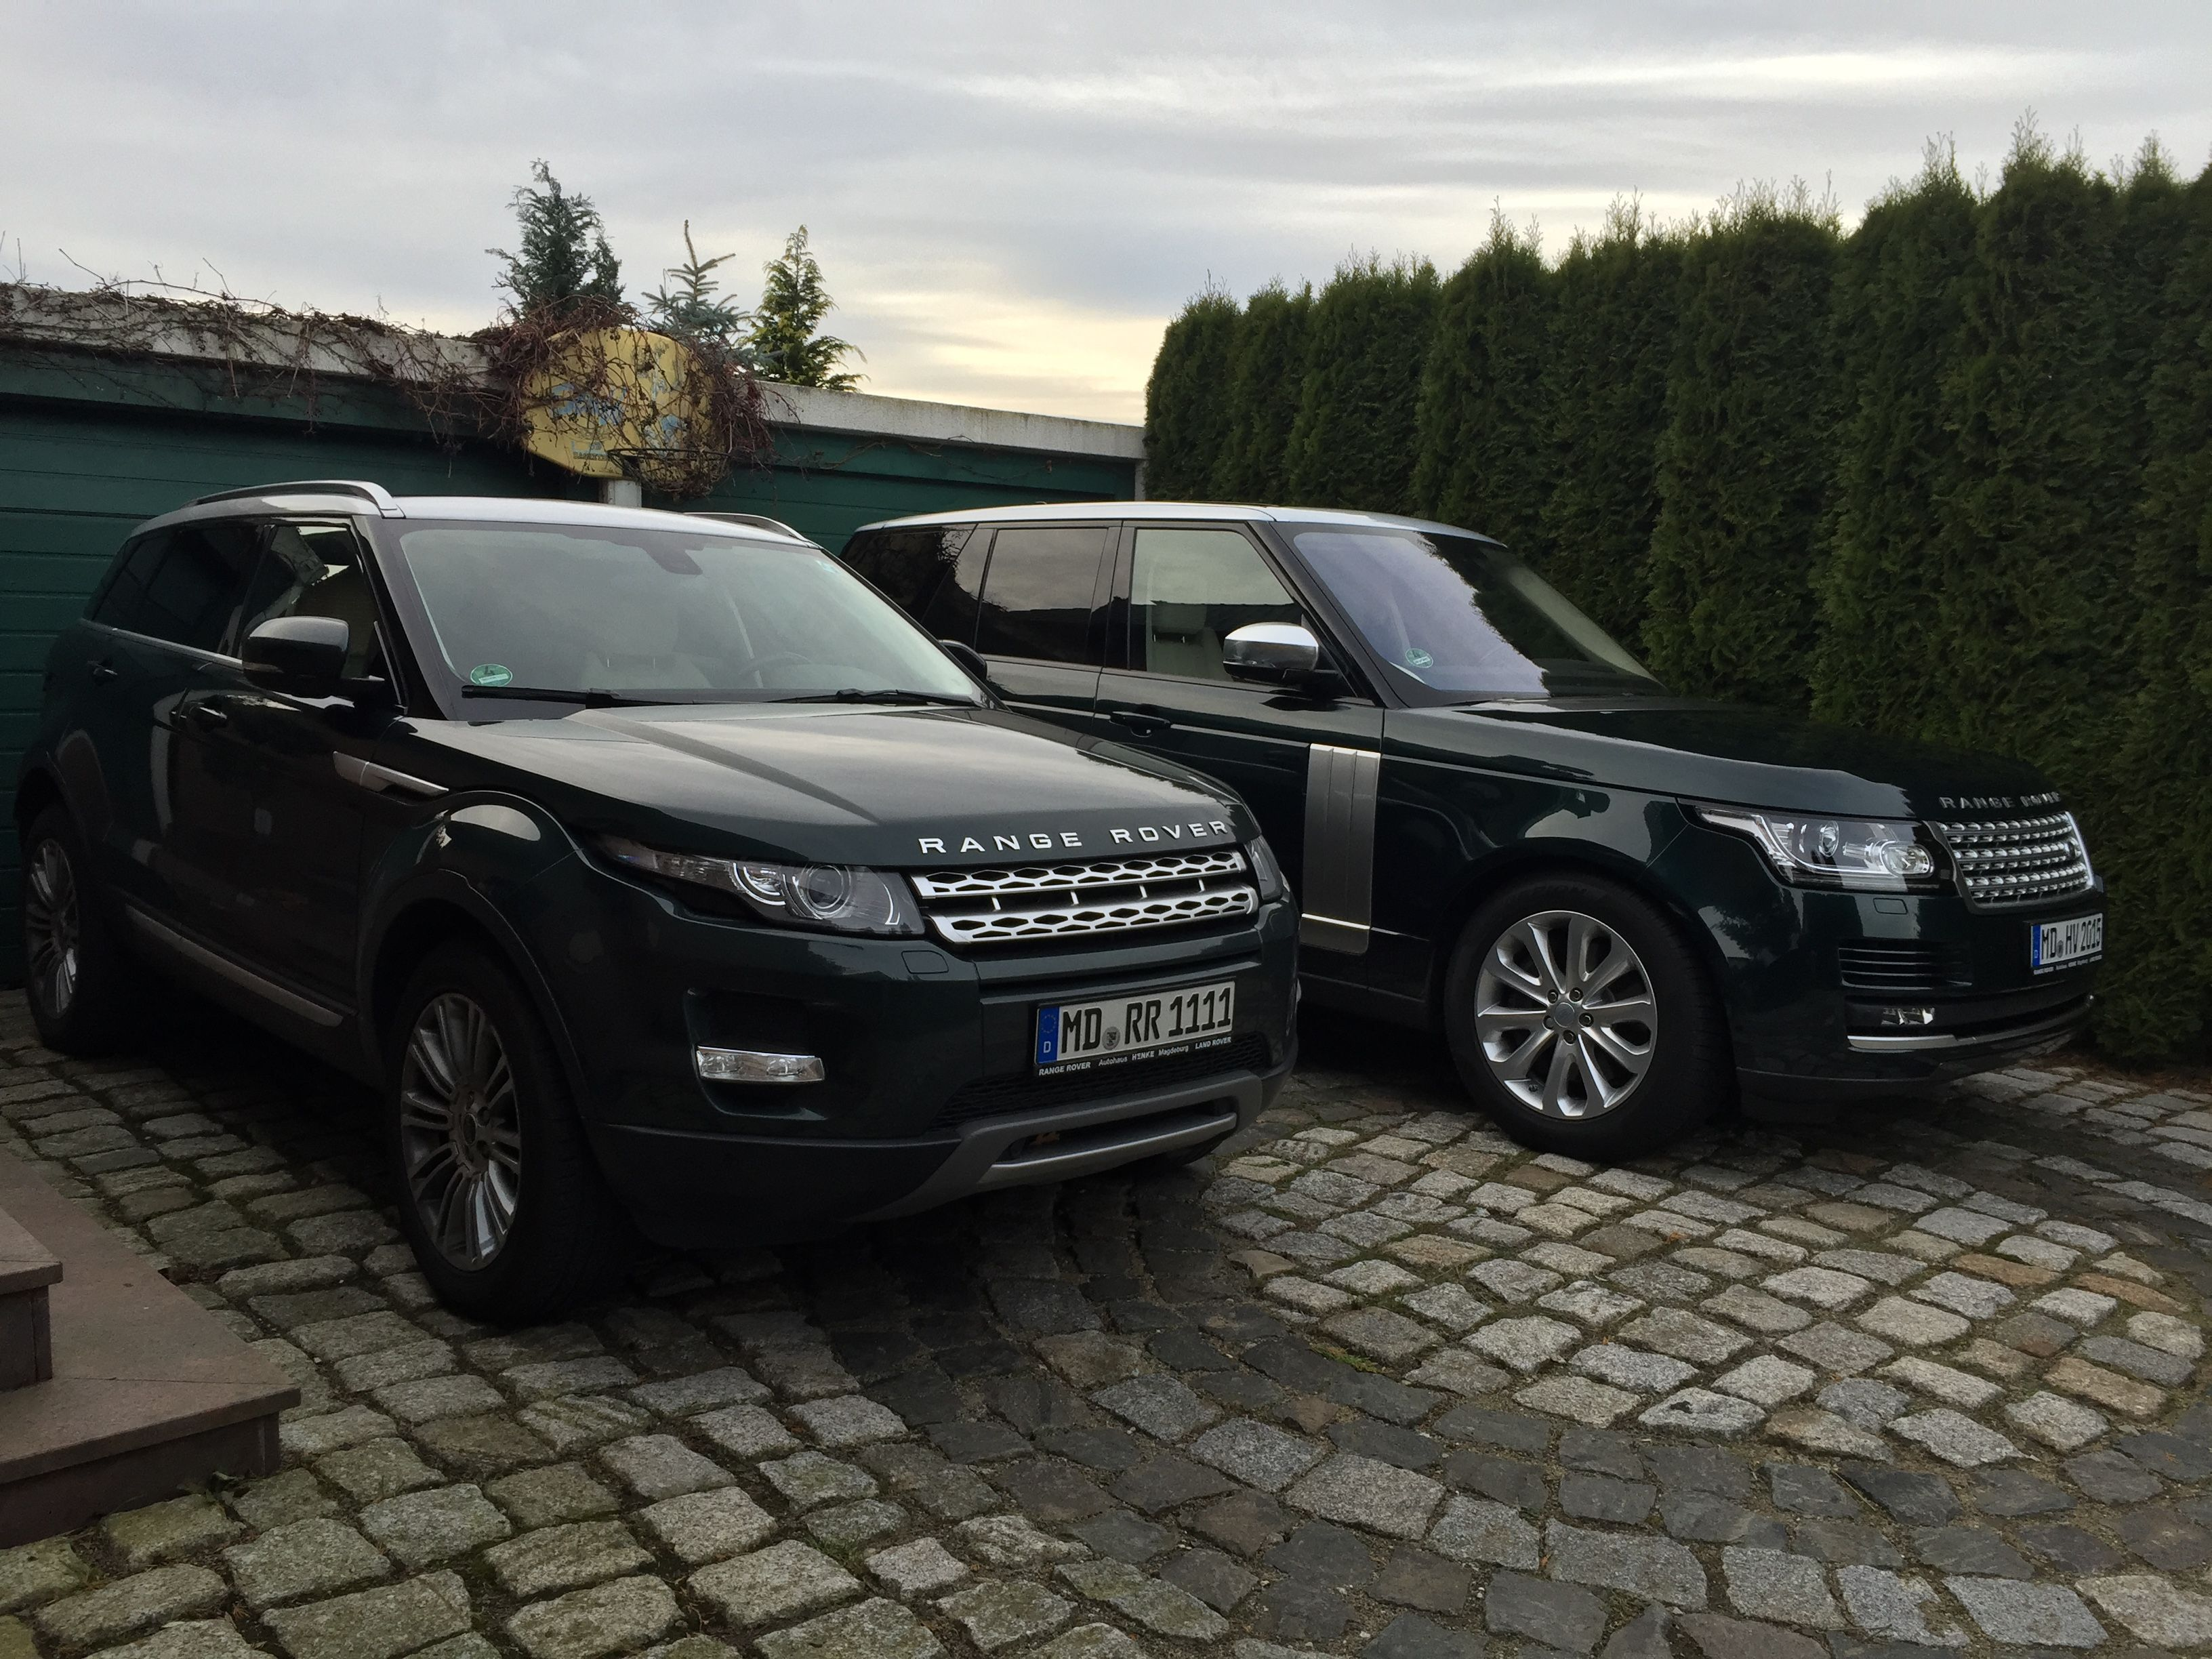 Range rover evoque 2012 and range rover vogue 2016 aintree green indus silver a range rover must be green pinterest range rover evoque 2012